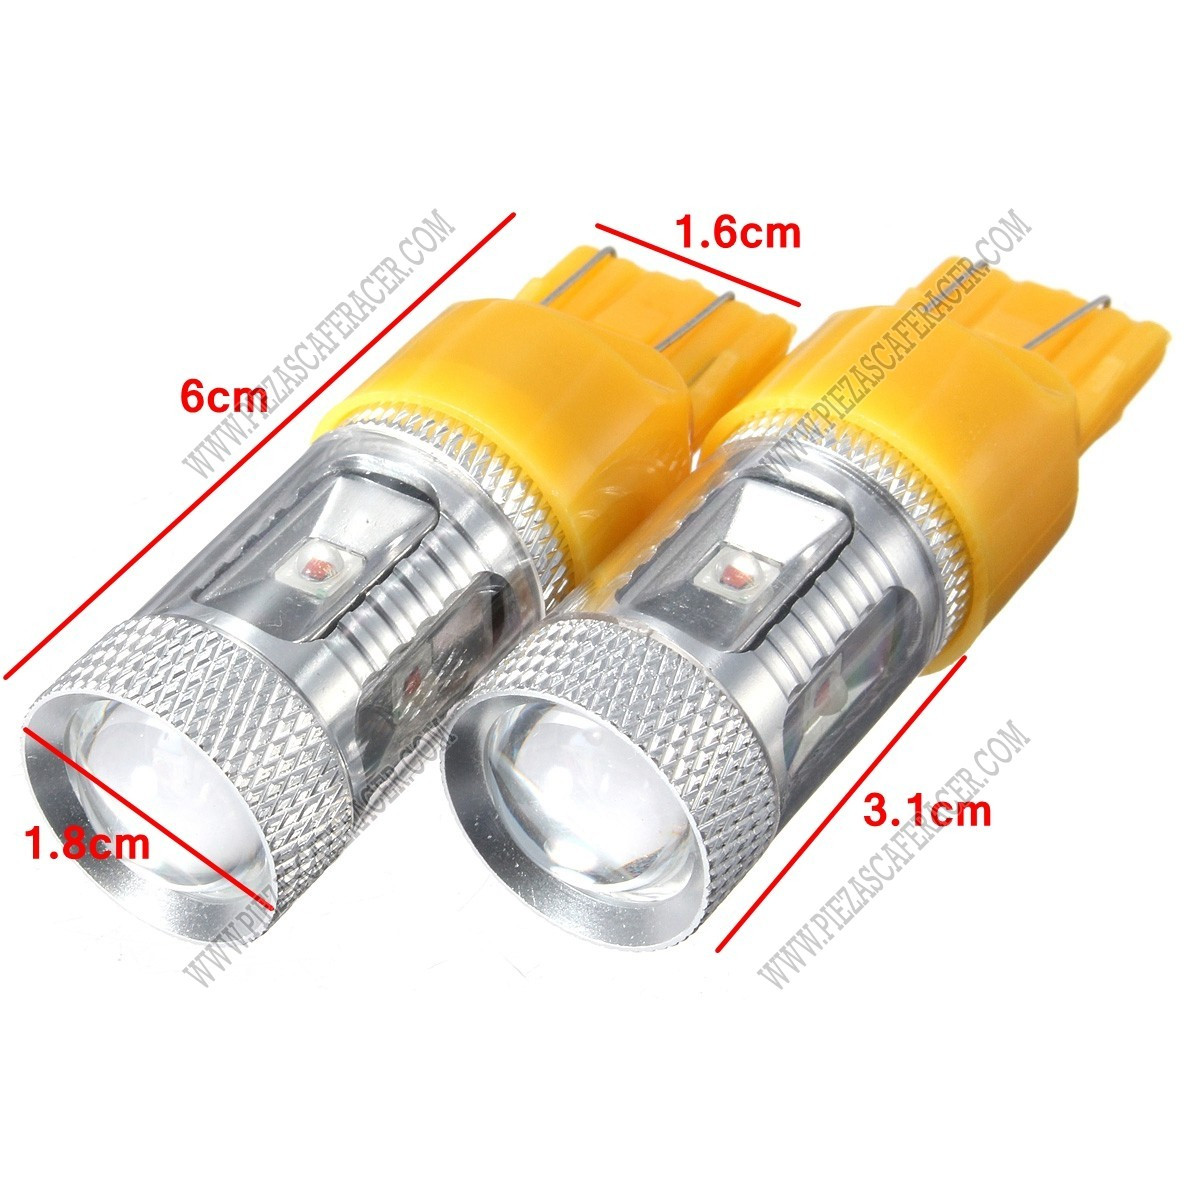 Bombillas De Led Para Coche Mejor Bombillas Led De Recambio 30w 7443 7440 Para Luces Of Bombillas De Led Para Coche Lujo Pareja De Illas Led Para Parasoles C5w Festoon